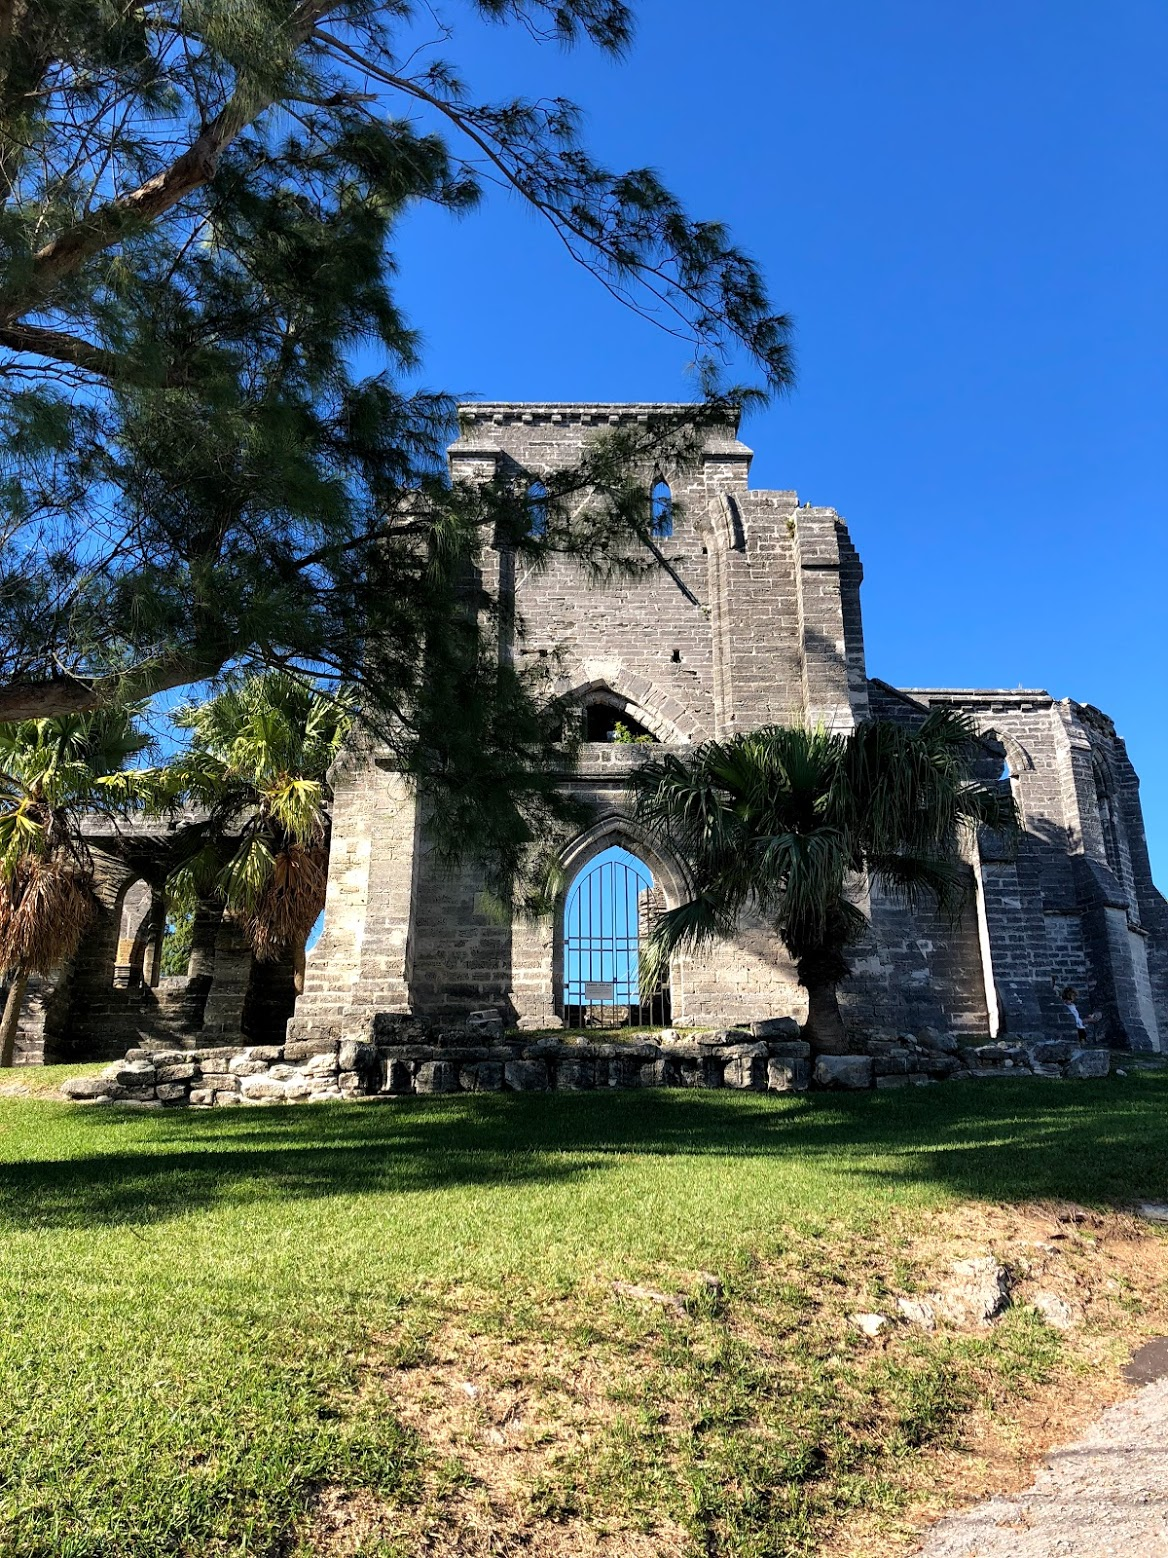 unfinished church, st. georges's island, bermuda, the-alyst.com